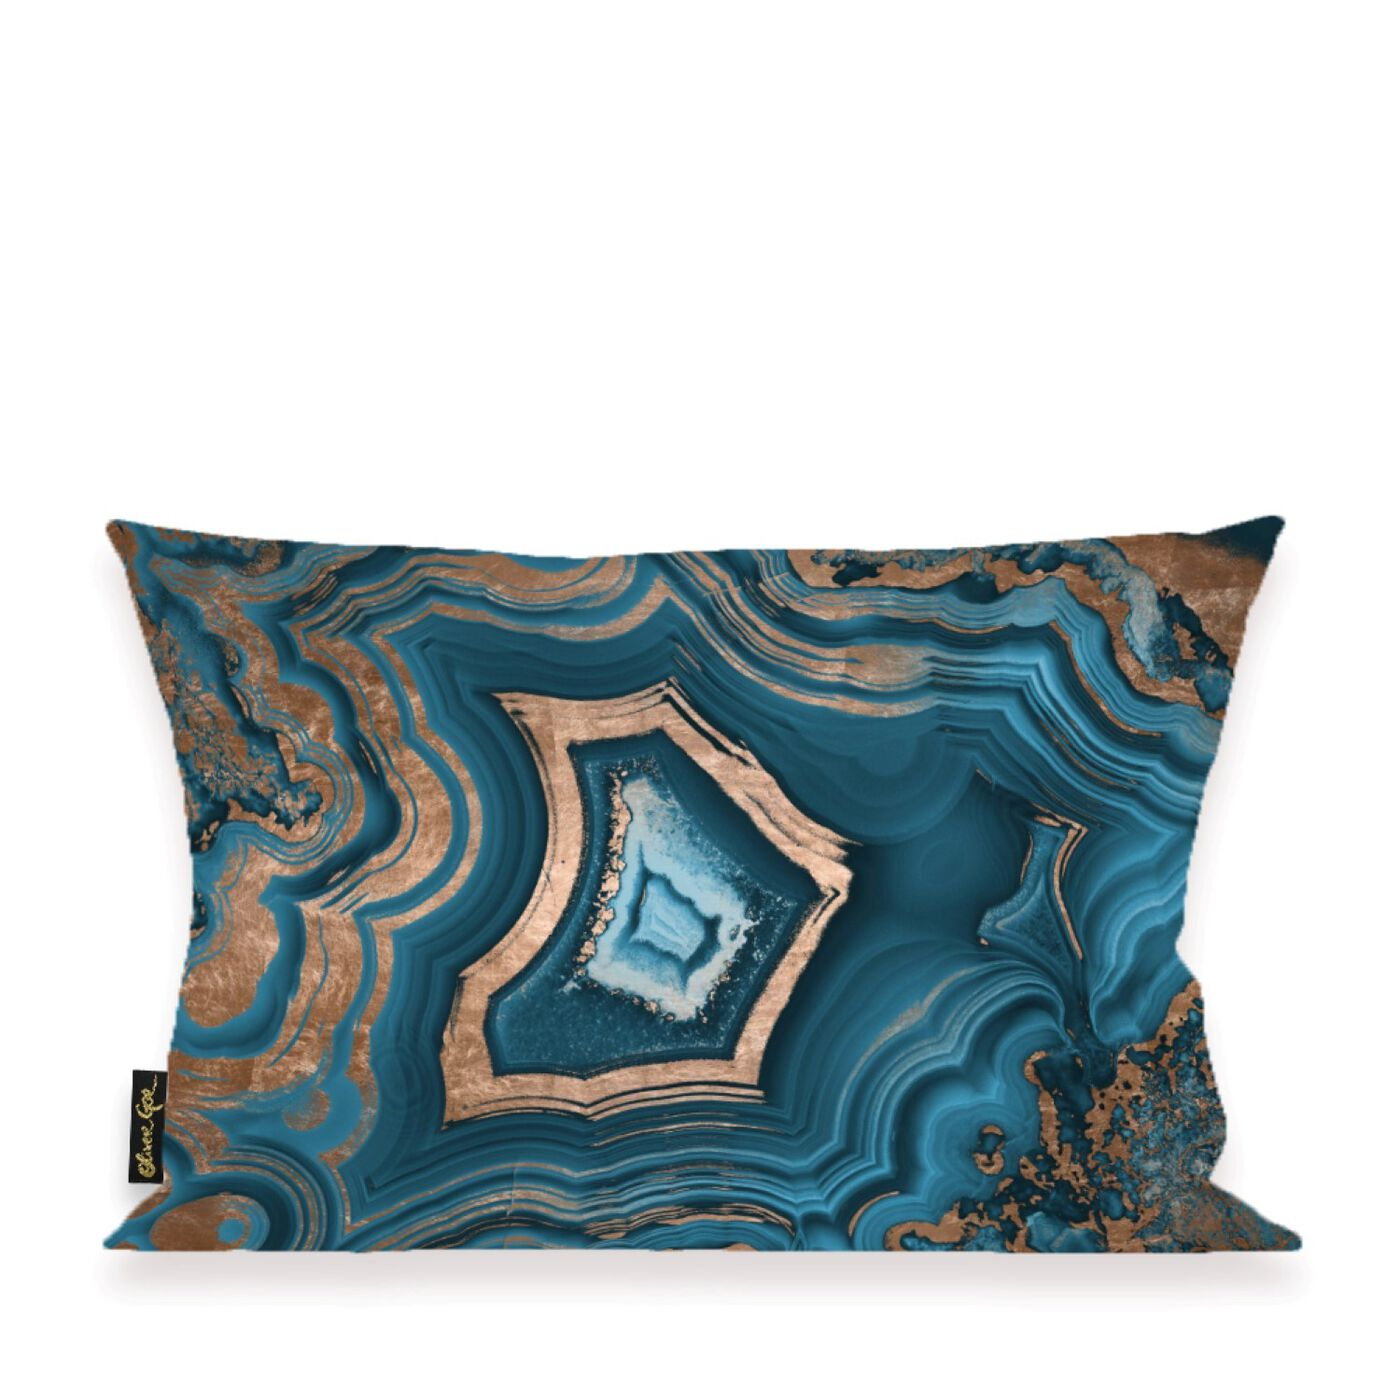 Dreaming About You Geode Pillow